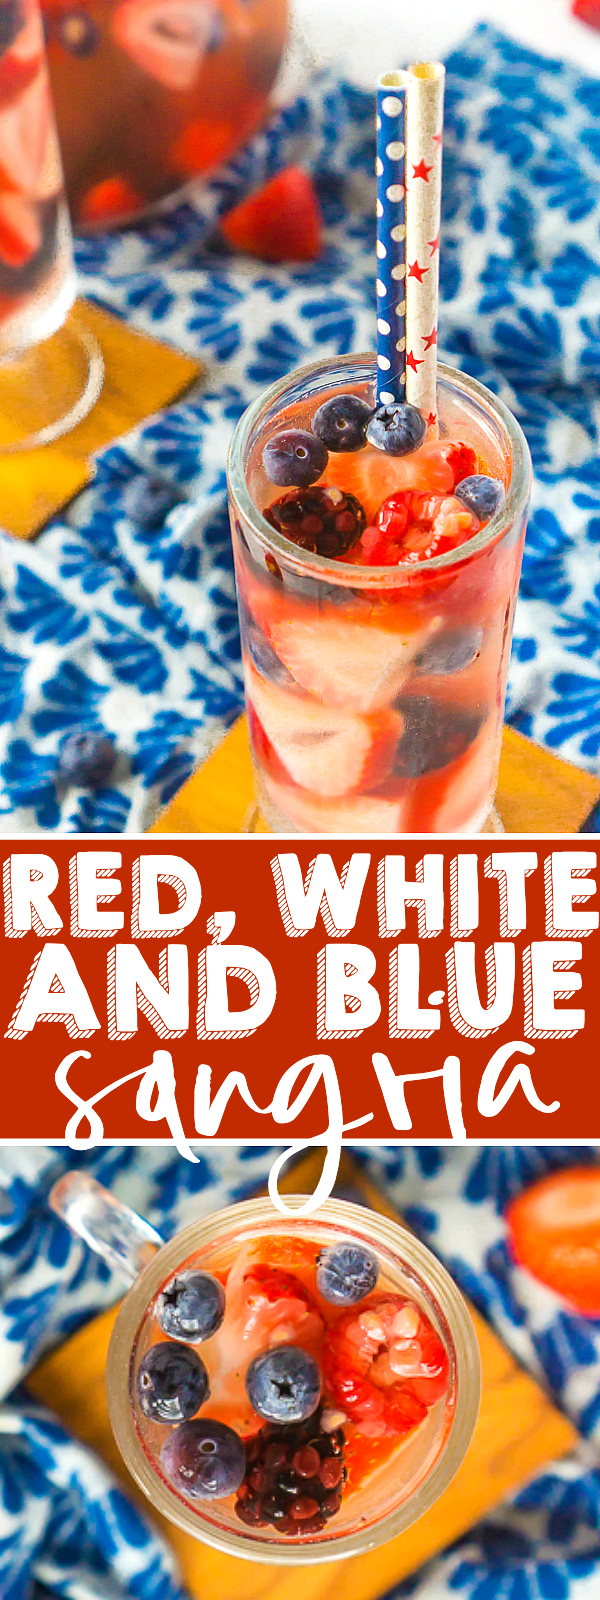 A Red White and Blue Sangria - Filled with delicious summer berries, this is the BEST Summer Sangria Recipe and the easiest 4th of July cocktail! It's light, refreshing and so easy to make and customize all summer long. Plus, it doesn't need to sit over night making it great for summer parties!| THE LOVE NERDS #SANGRIARECIPE #SUMMERCOCKTAIL #WINECOCKTAIL